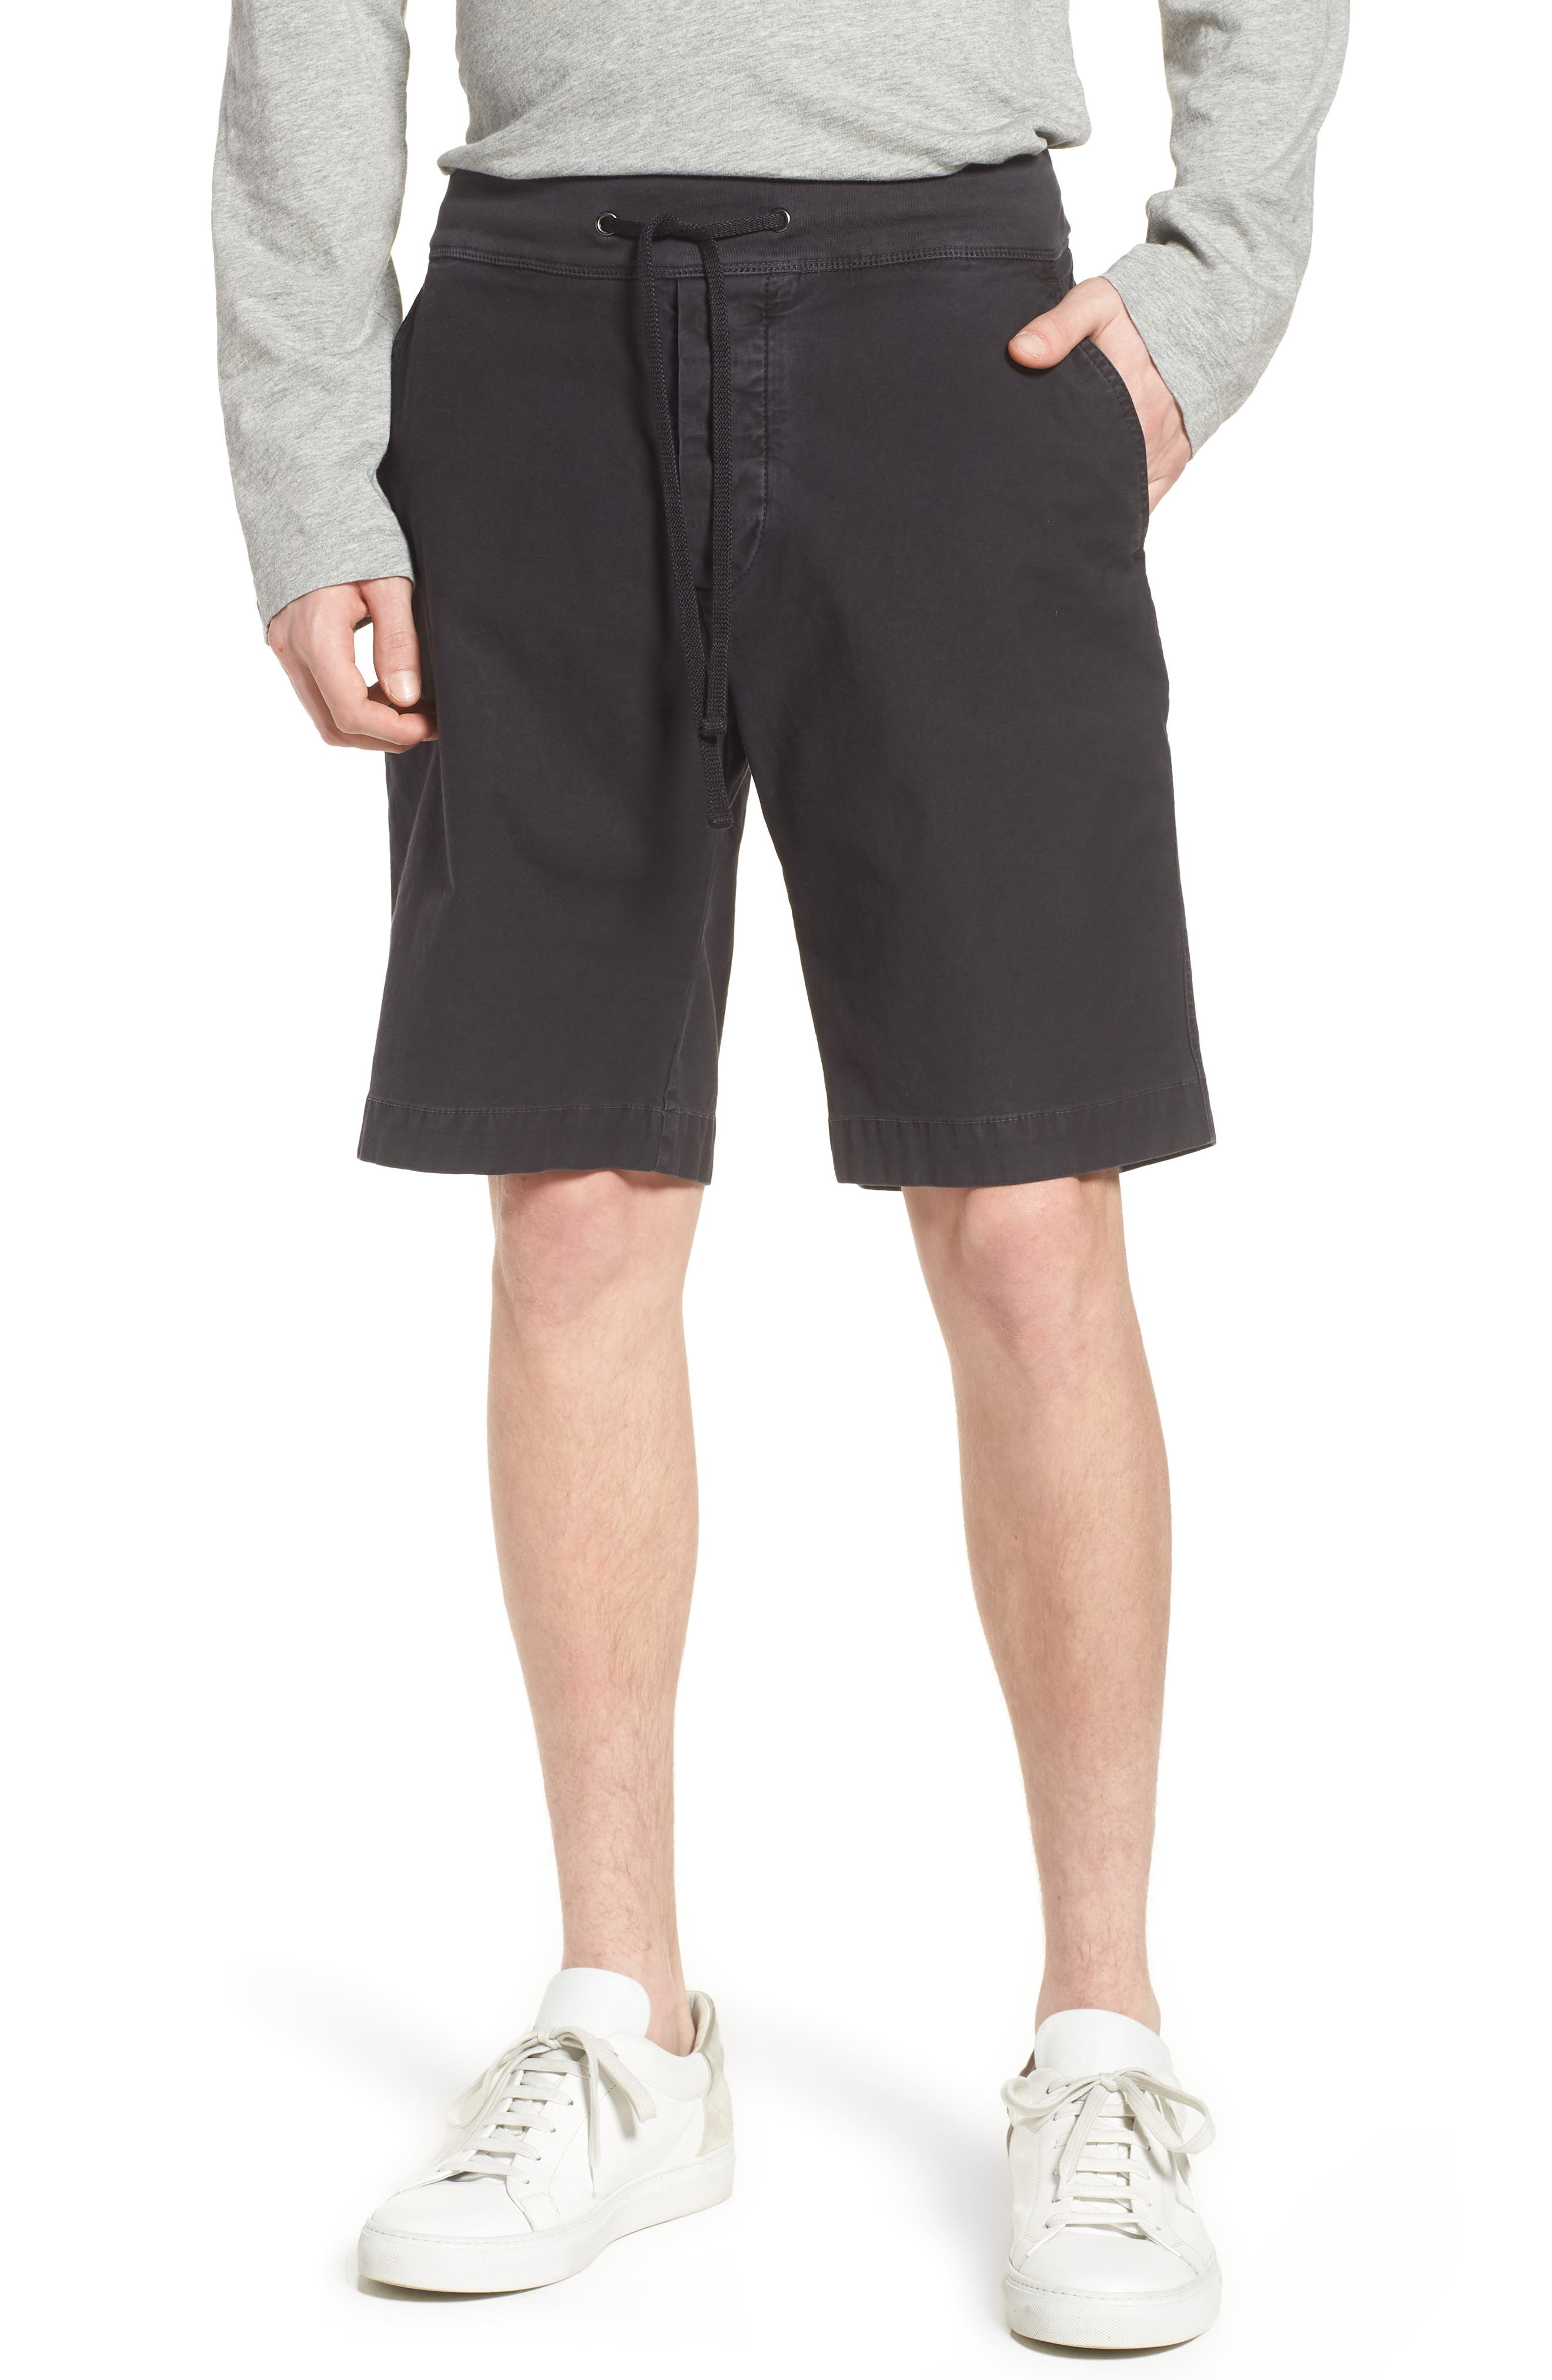 JAMES PERSE Compact Stretch Cotton Shorts, Main, color, 020